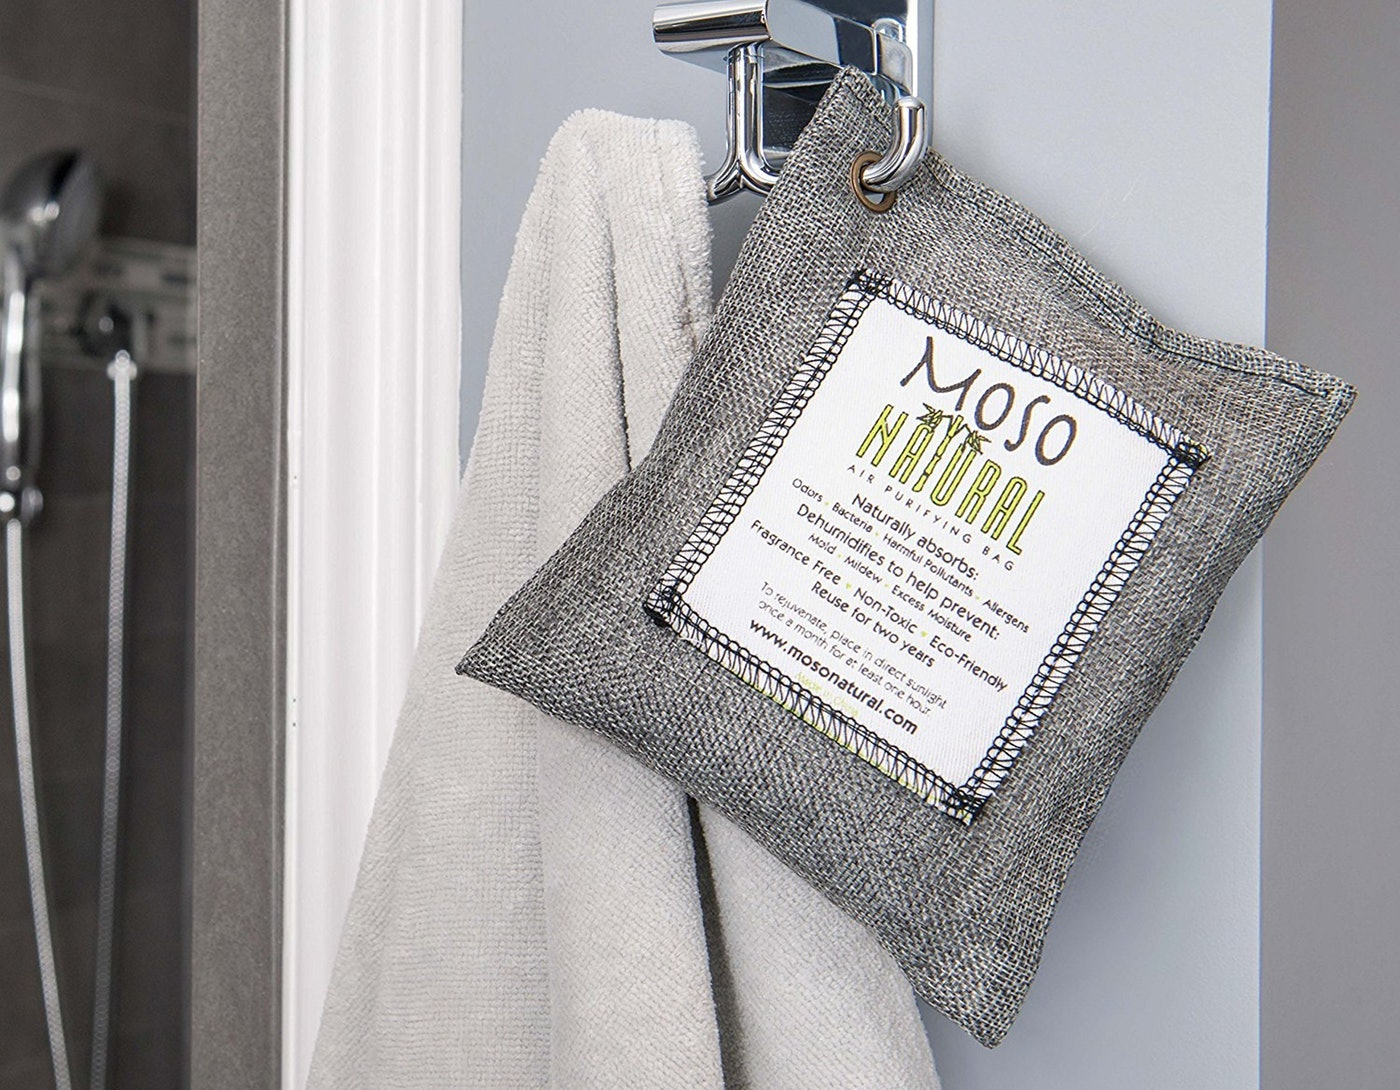 The 12 Best Air Fresheners For Bathroom Smells